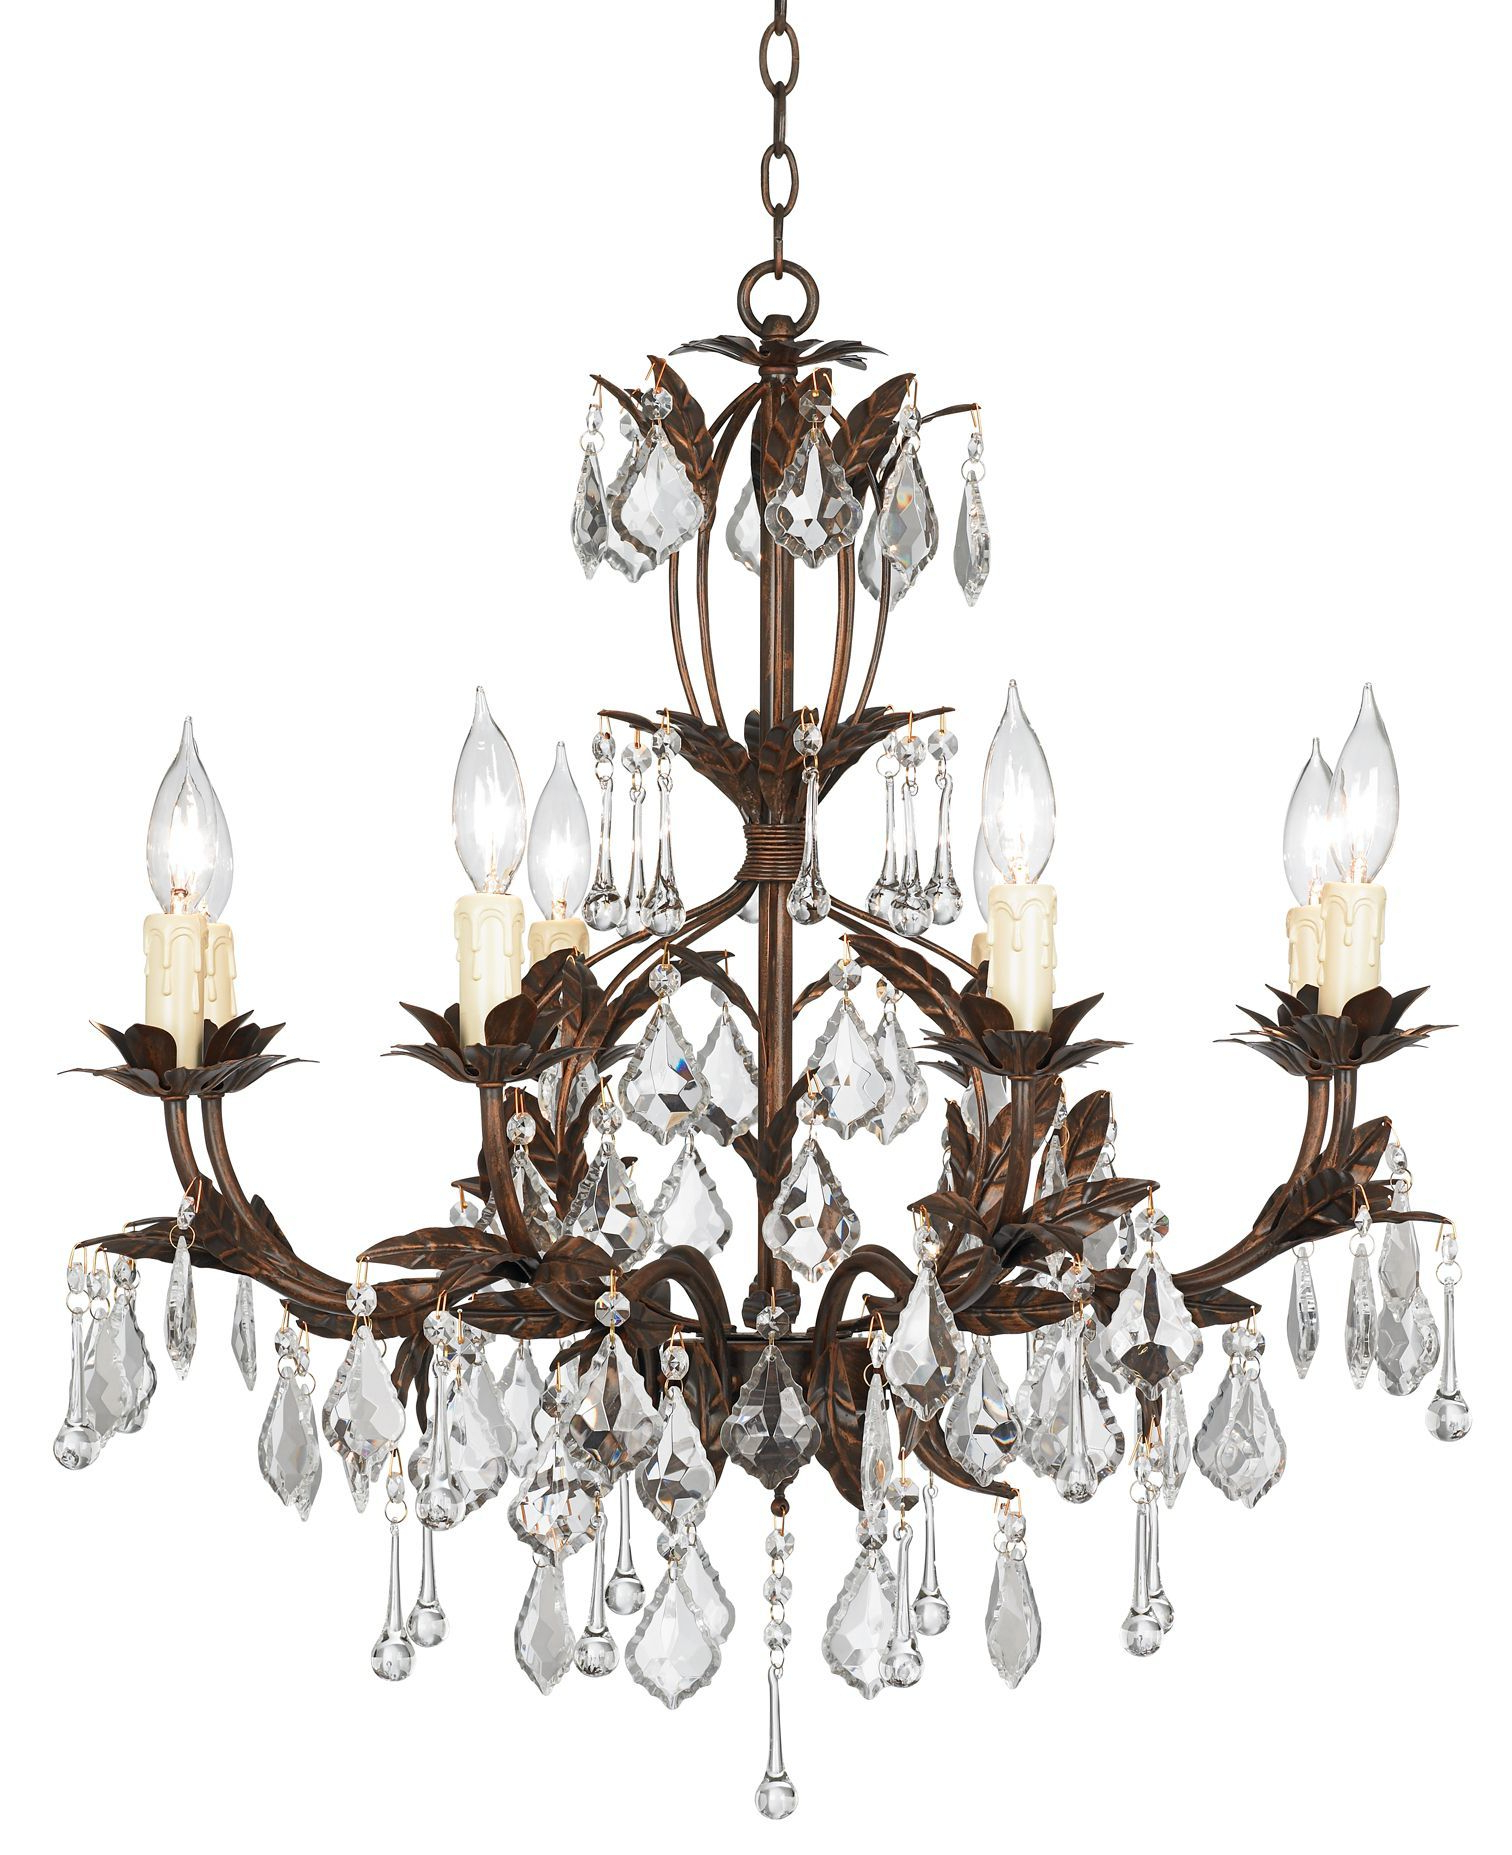 "2020 Hesse 5 Light Candle-Style Chandeliers inside Kathy Ireland Venezia Bronze 8-Light 26"" Wide Chandelier"